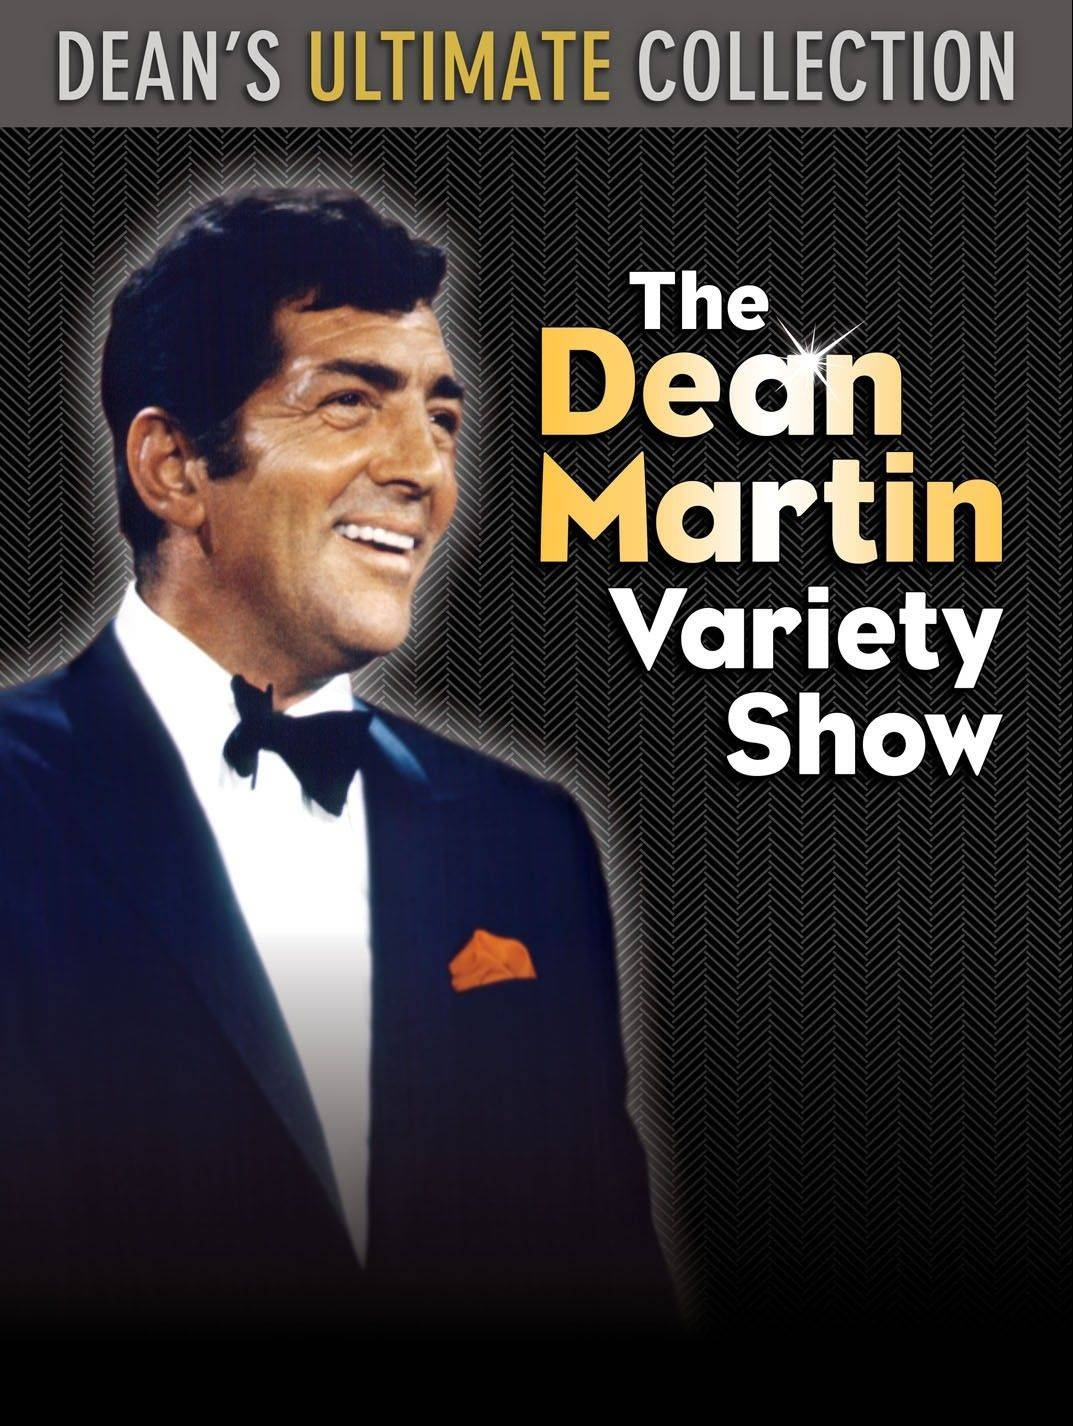 """Dean's Ultimate Collection: The Dean Martin Variety Show"" showcases footage culled from nine seasons of the NBC series."